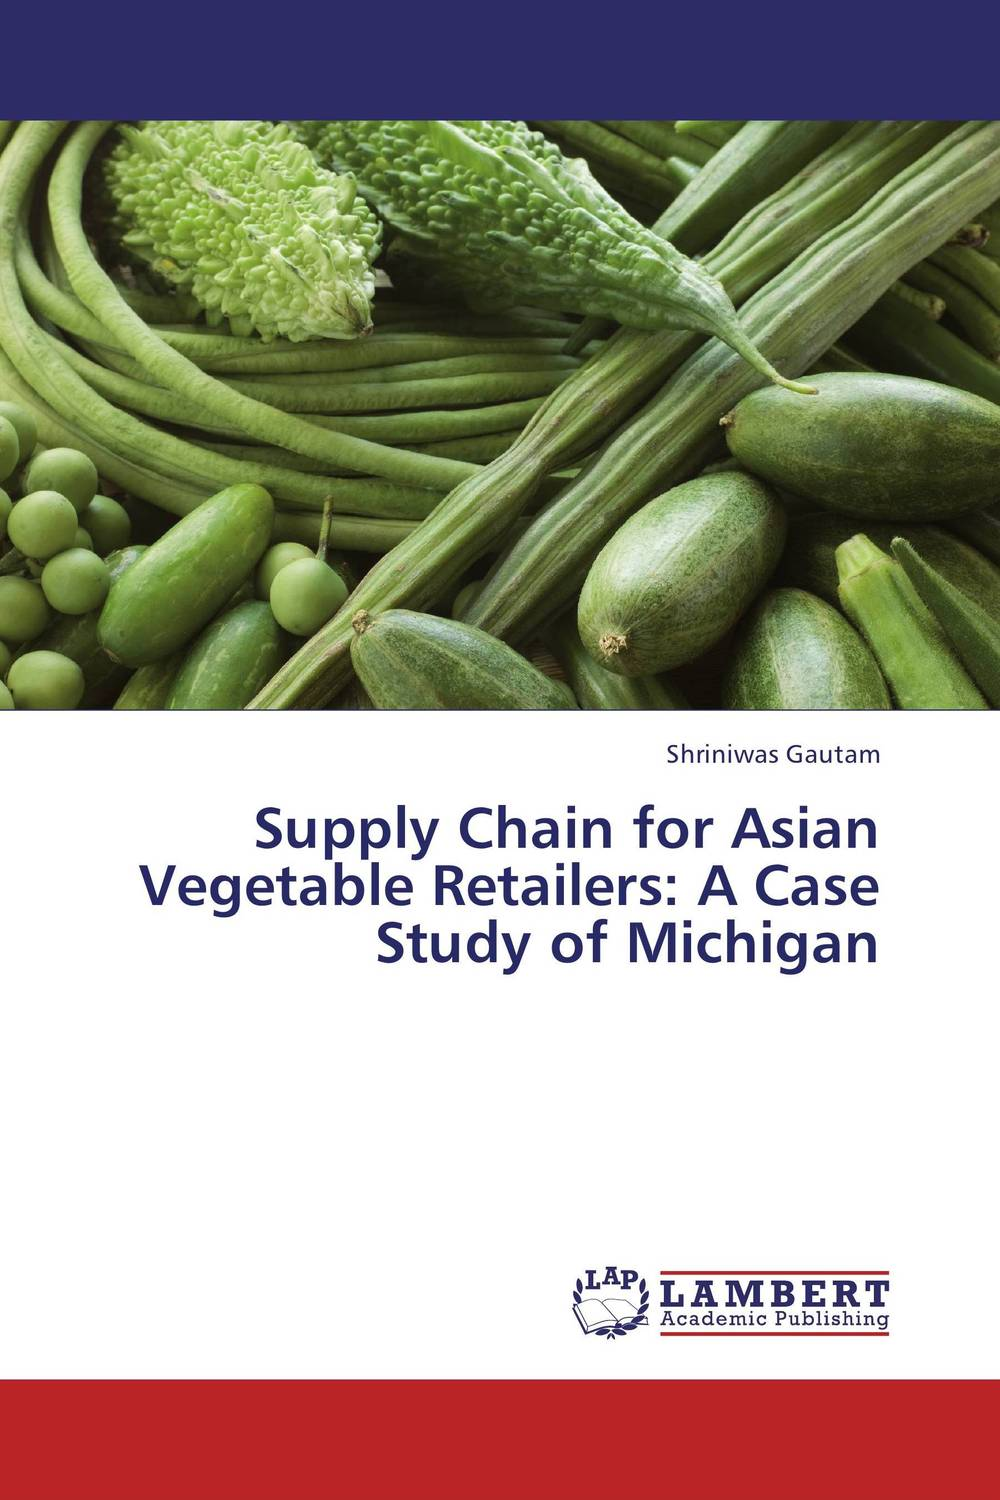 Supply Chain for Asian Vegetable Retailers: A Case Study of Michigan robert davis a demand driven inventory optimization and replenishment creating a more efficient supply chain